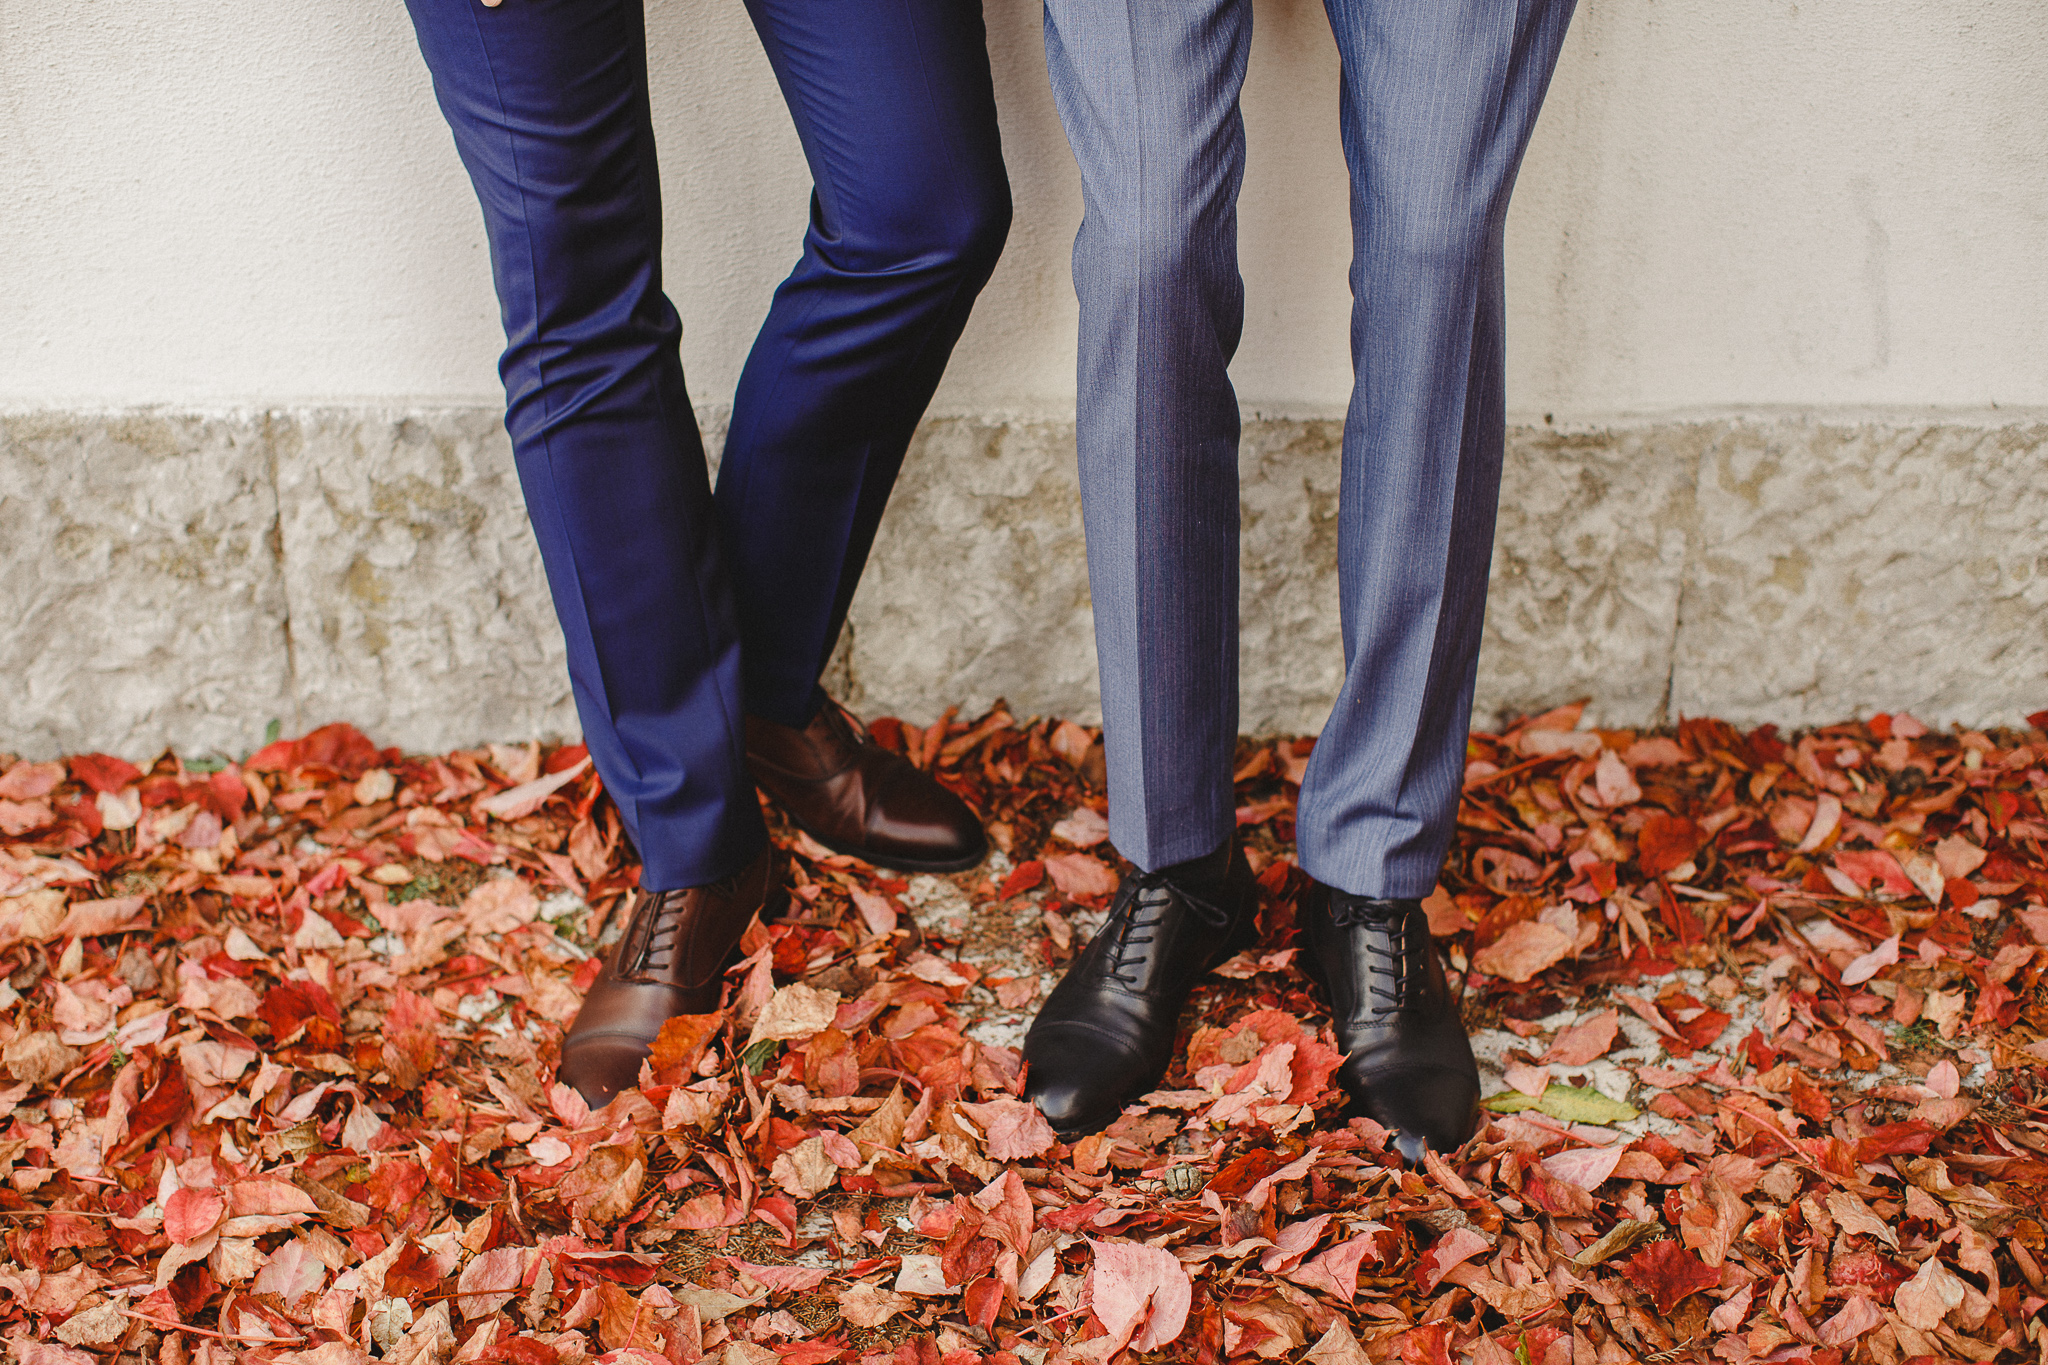 Two men stand wearing suits in a ground full of red leaves.